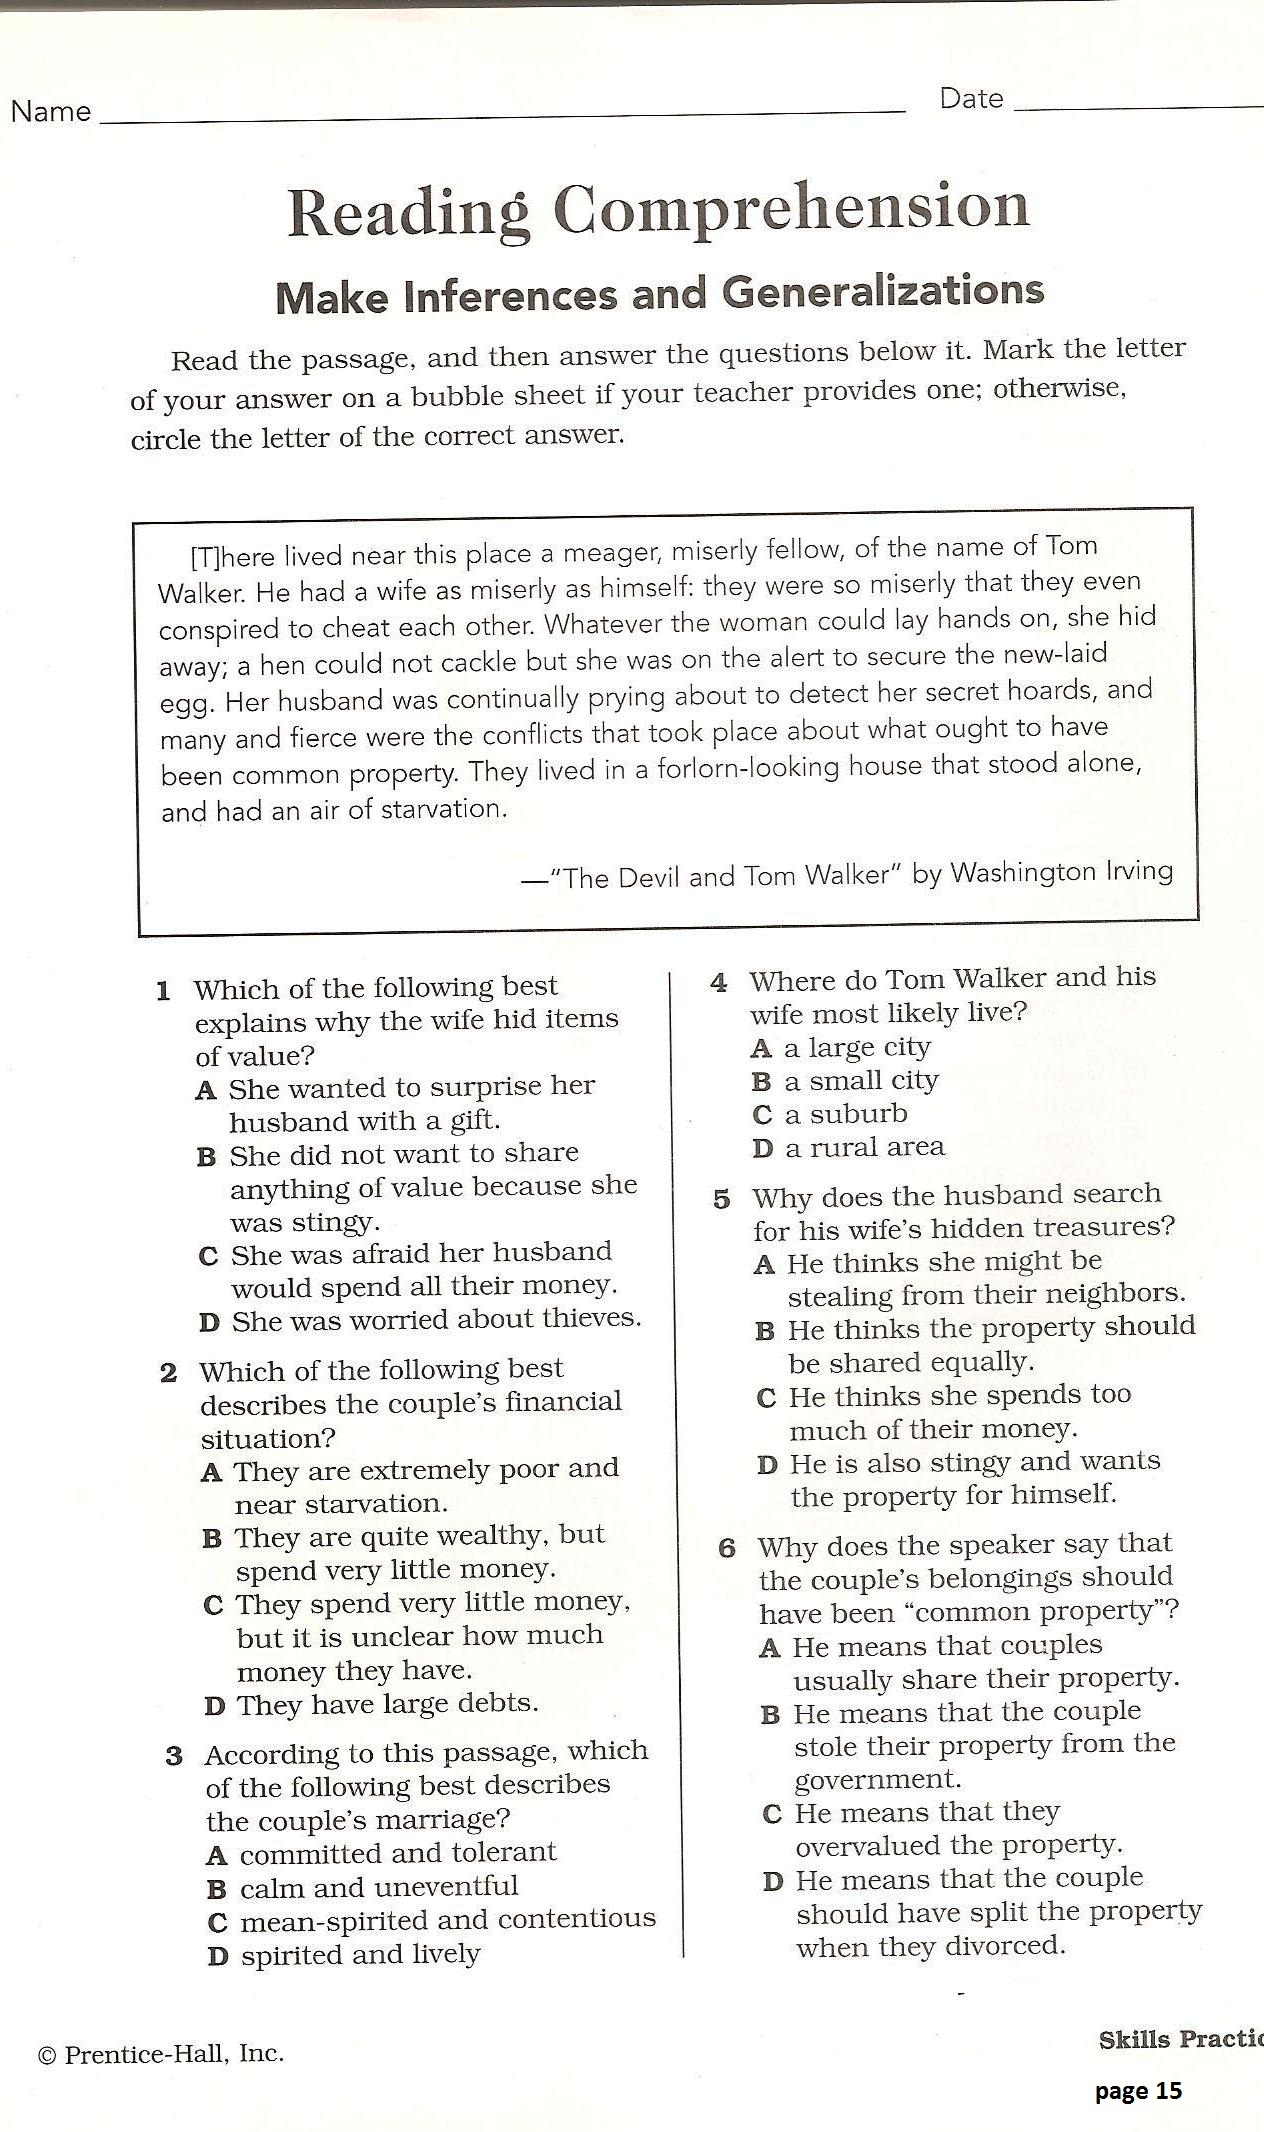 Worksheets Making Generalizations Worksheets canyon high school standardized testing star test schedule reading comprehension making inferences generalizations pdf